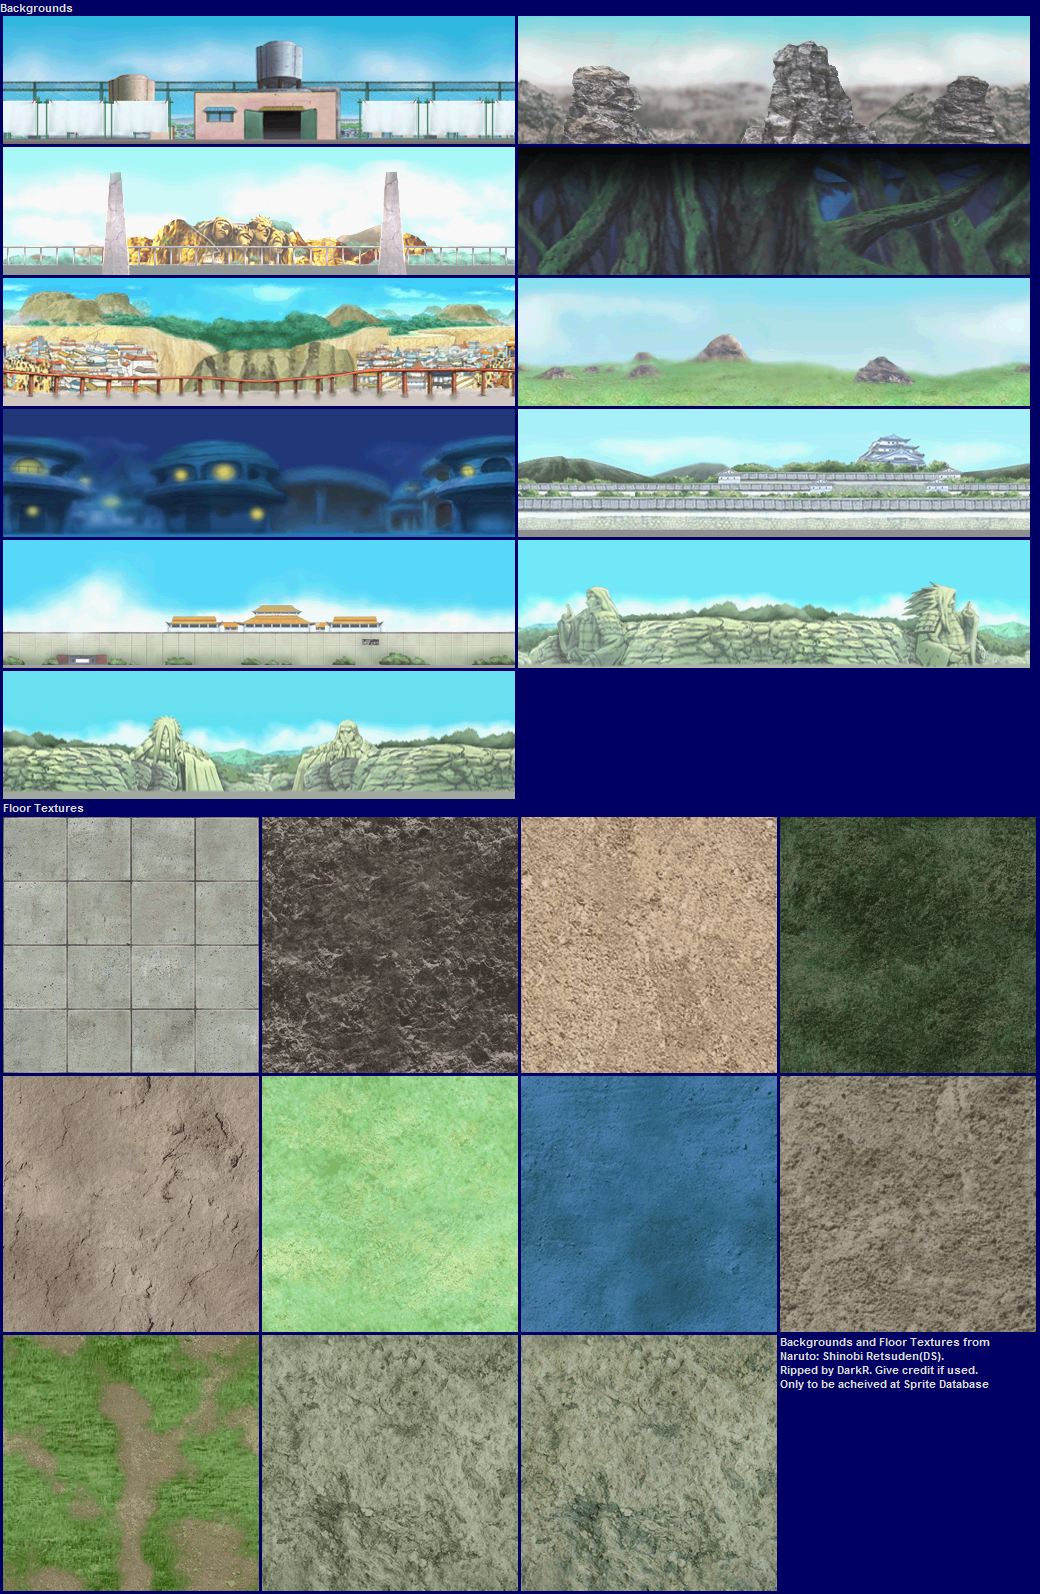 Background Sprite Sheets http://narutospritesheetdatabase.wikia.com/wiki/File:BackgroundsFloorTextures-SR1.png